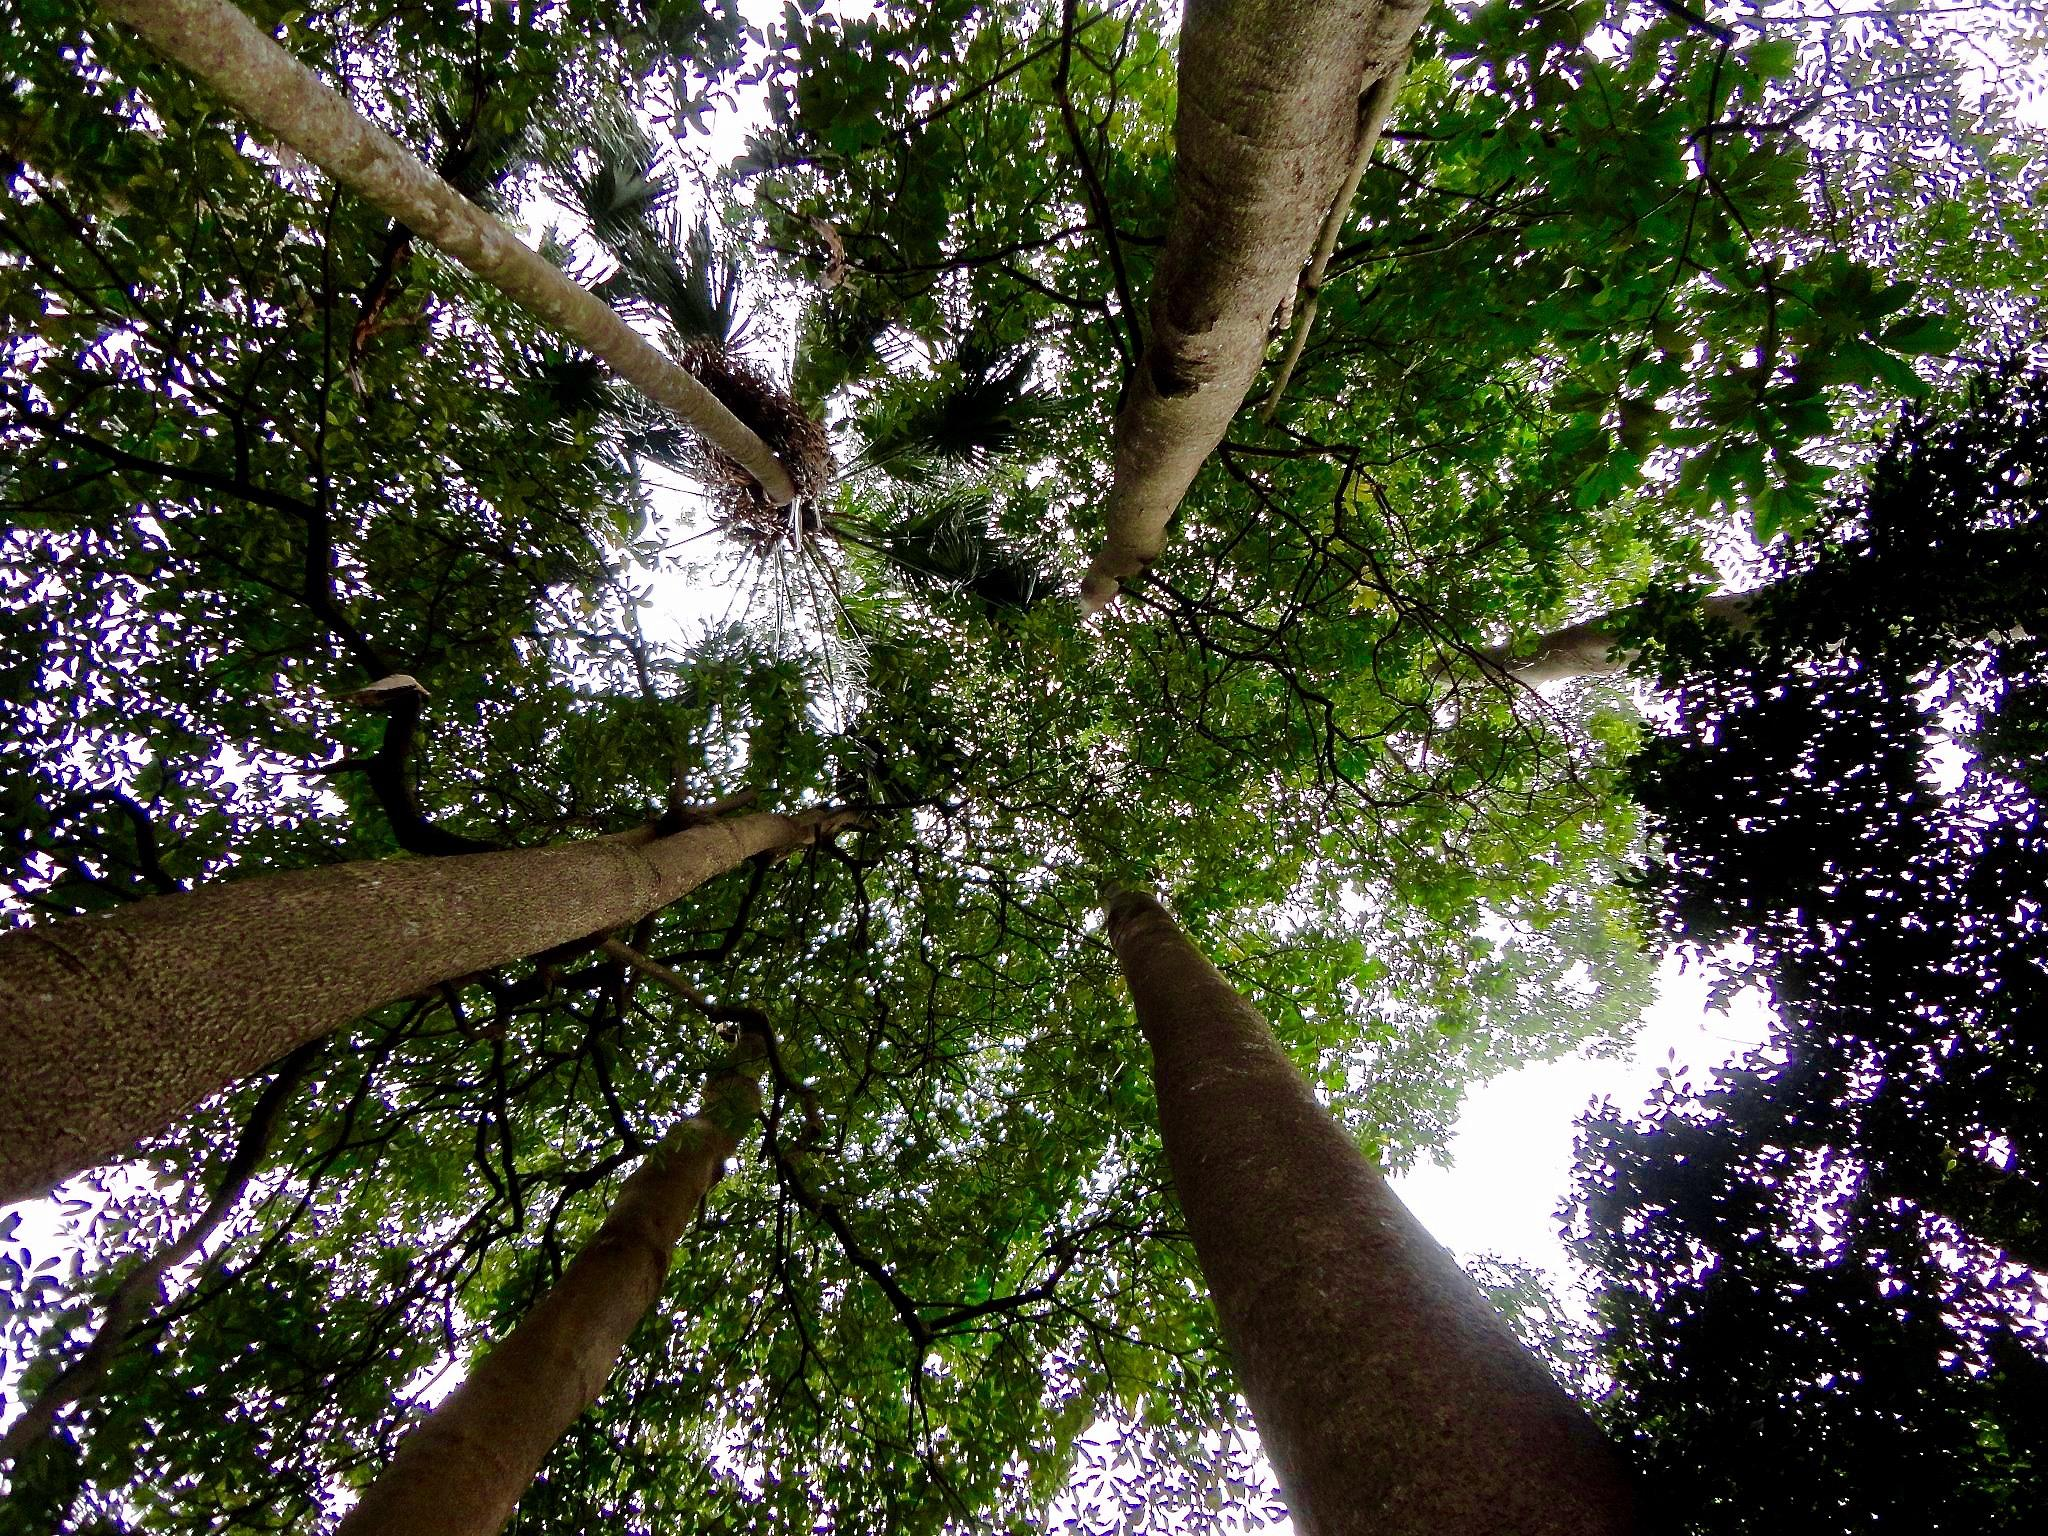 Tall Trees by Berlins Calix